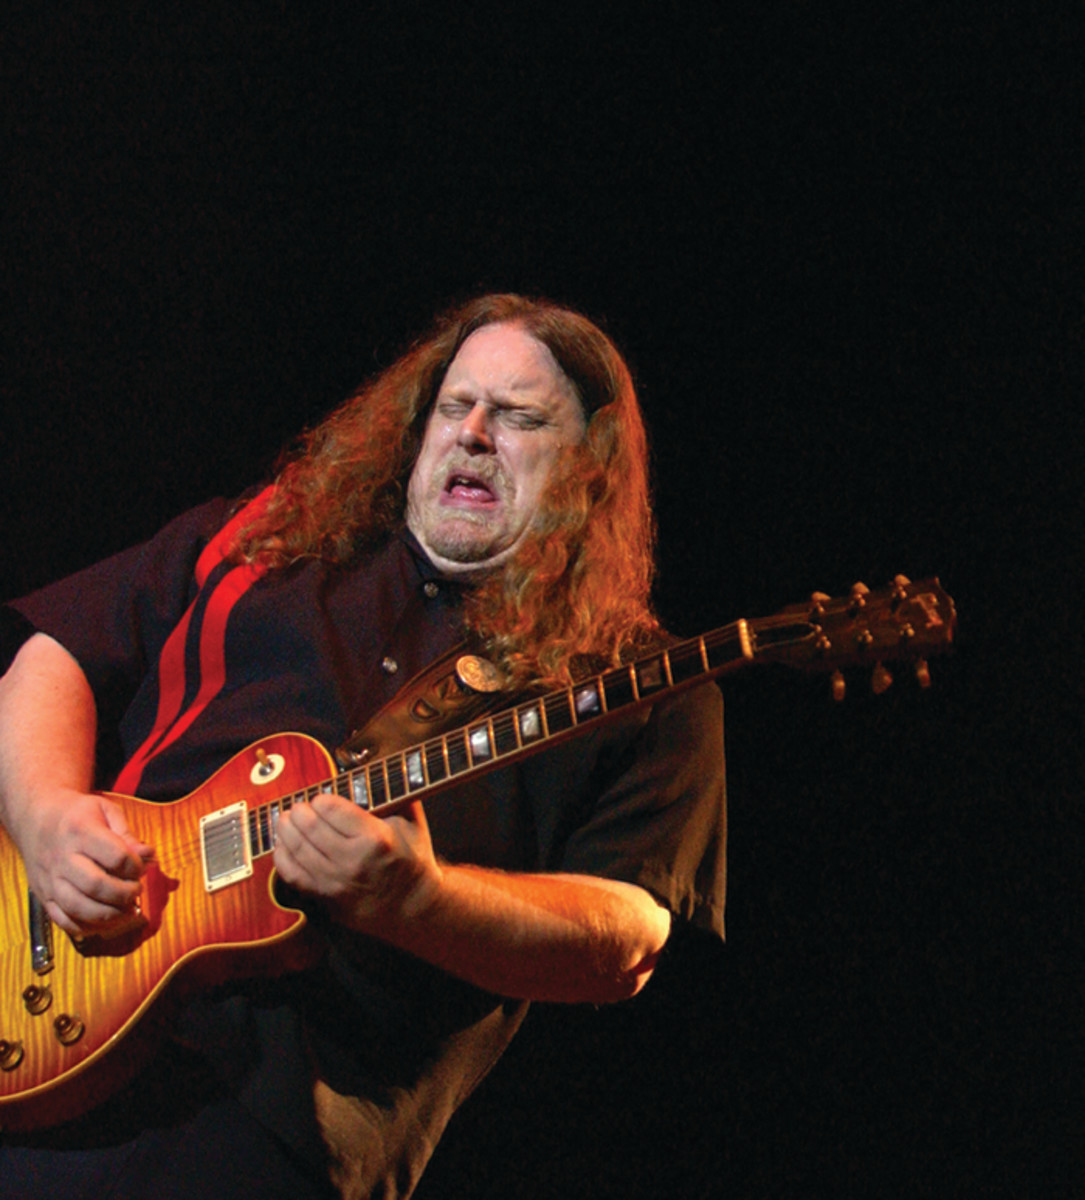 Warren Haynes. Photo by R. Diamond/WireImage.